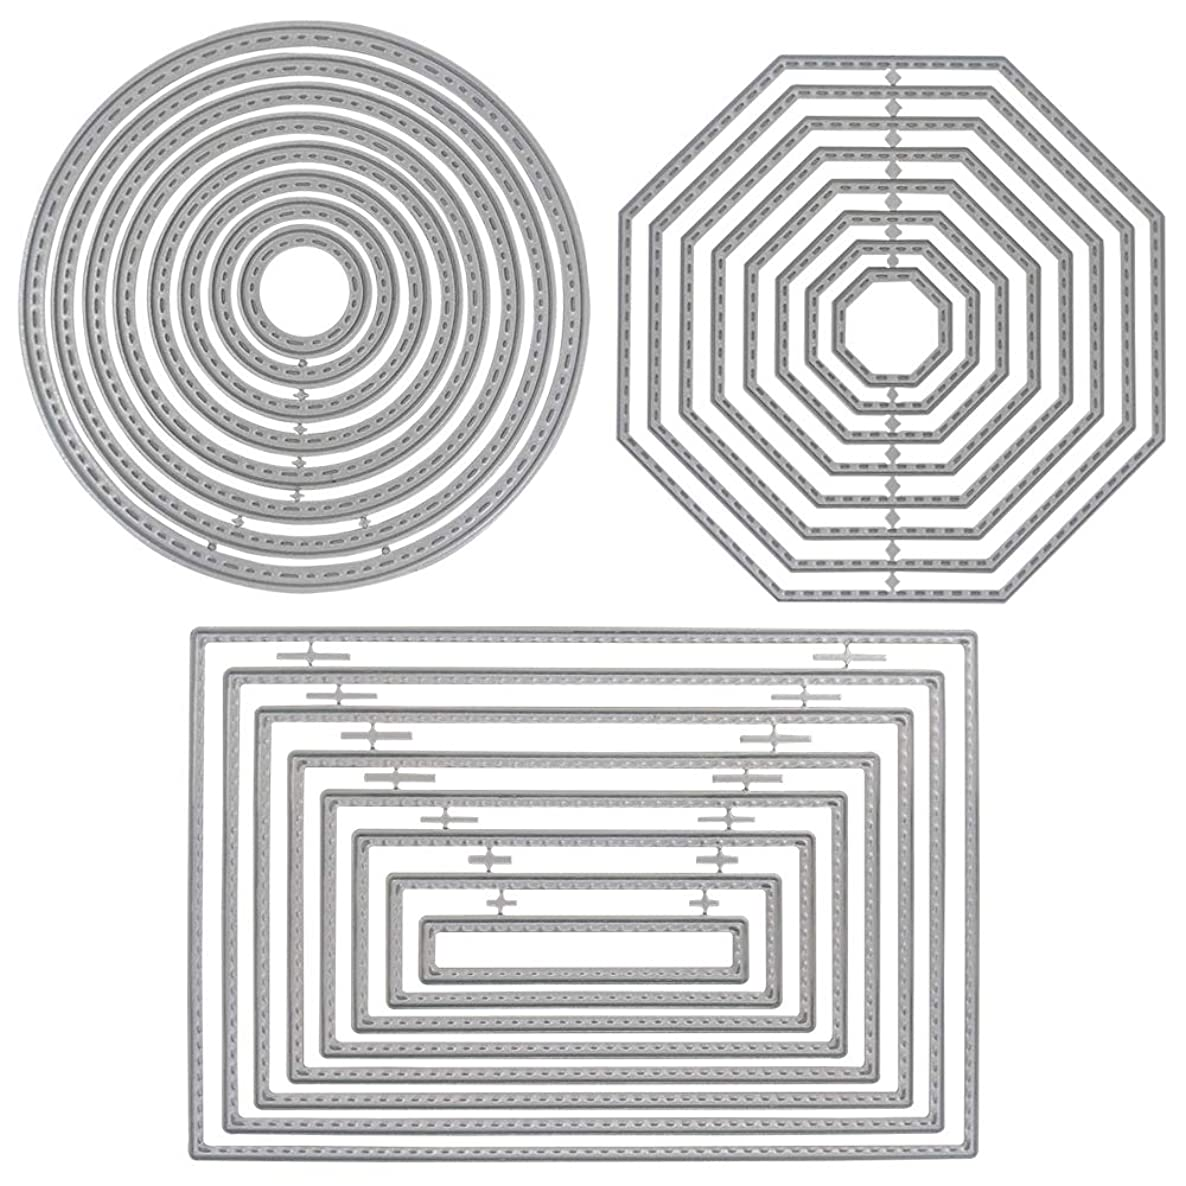 3 Different Shapes of Cutting Dies Stencil Metal Template Molds (Rectangle, Circle & Octagon), DaKuan 24 Pieces Embossing Tools?for Scrapbook, Album Paper DIY Crafts & Card Making